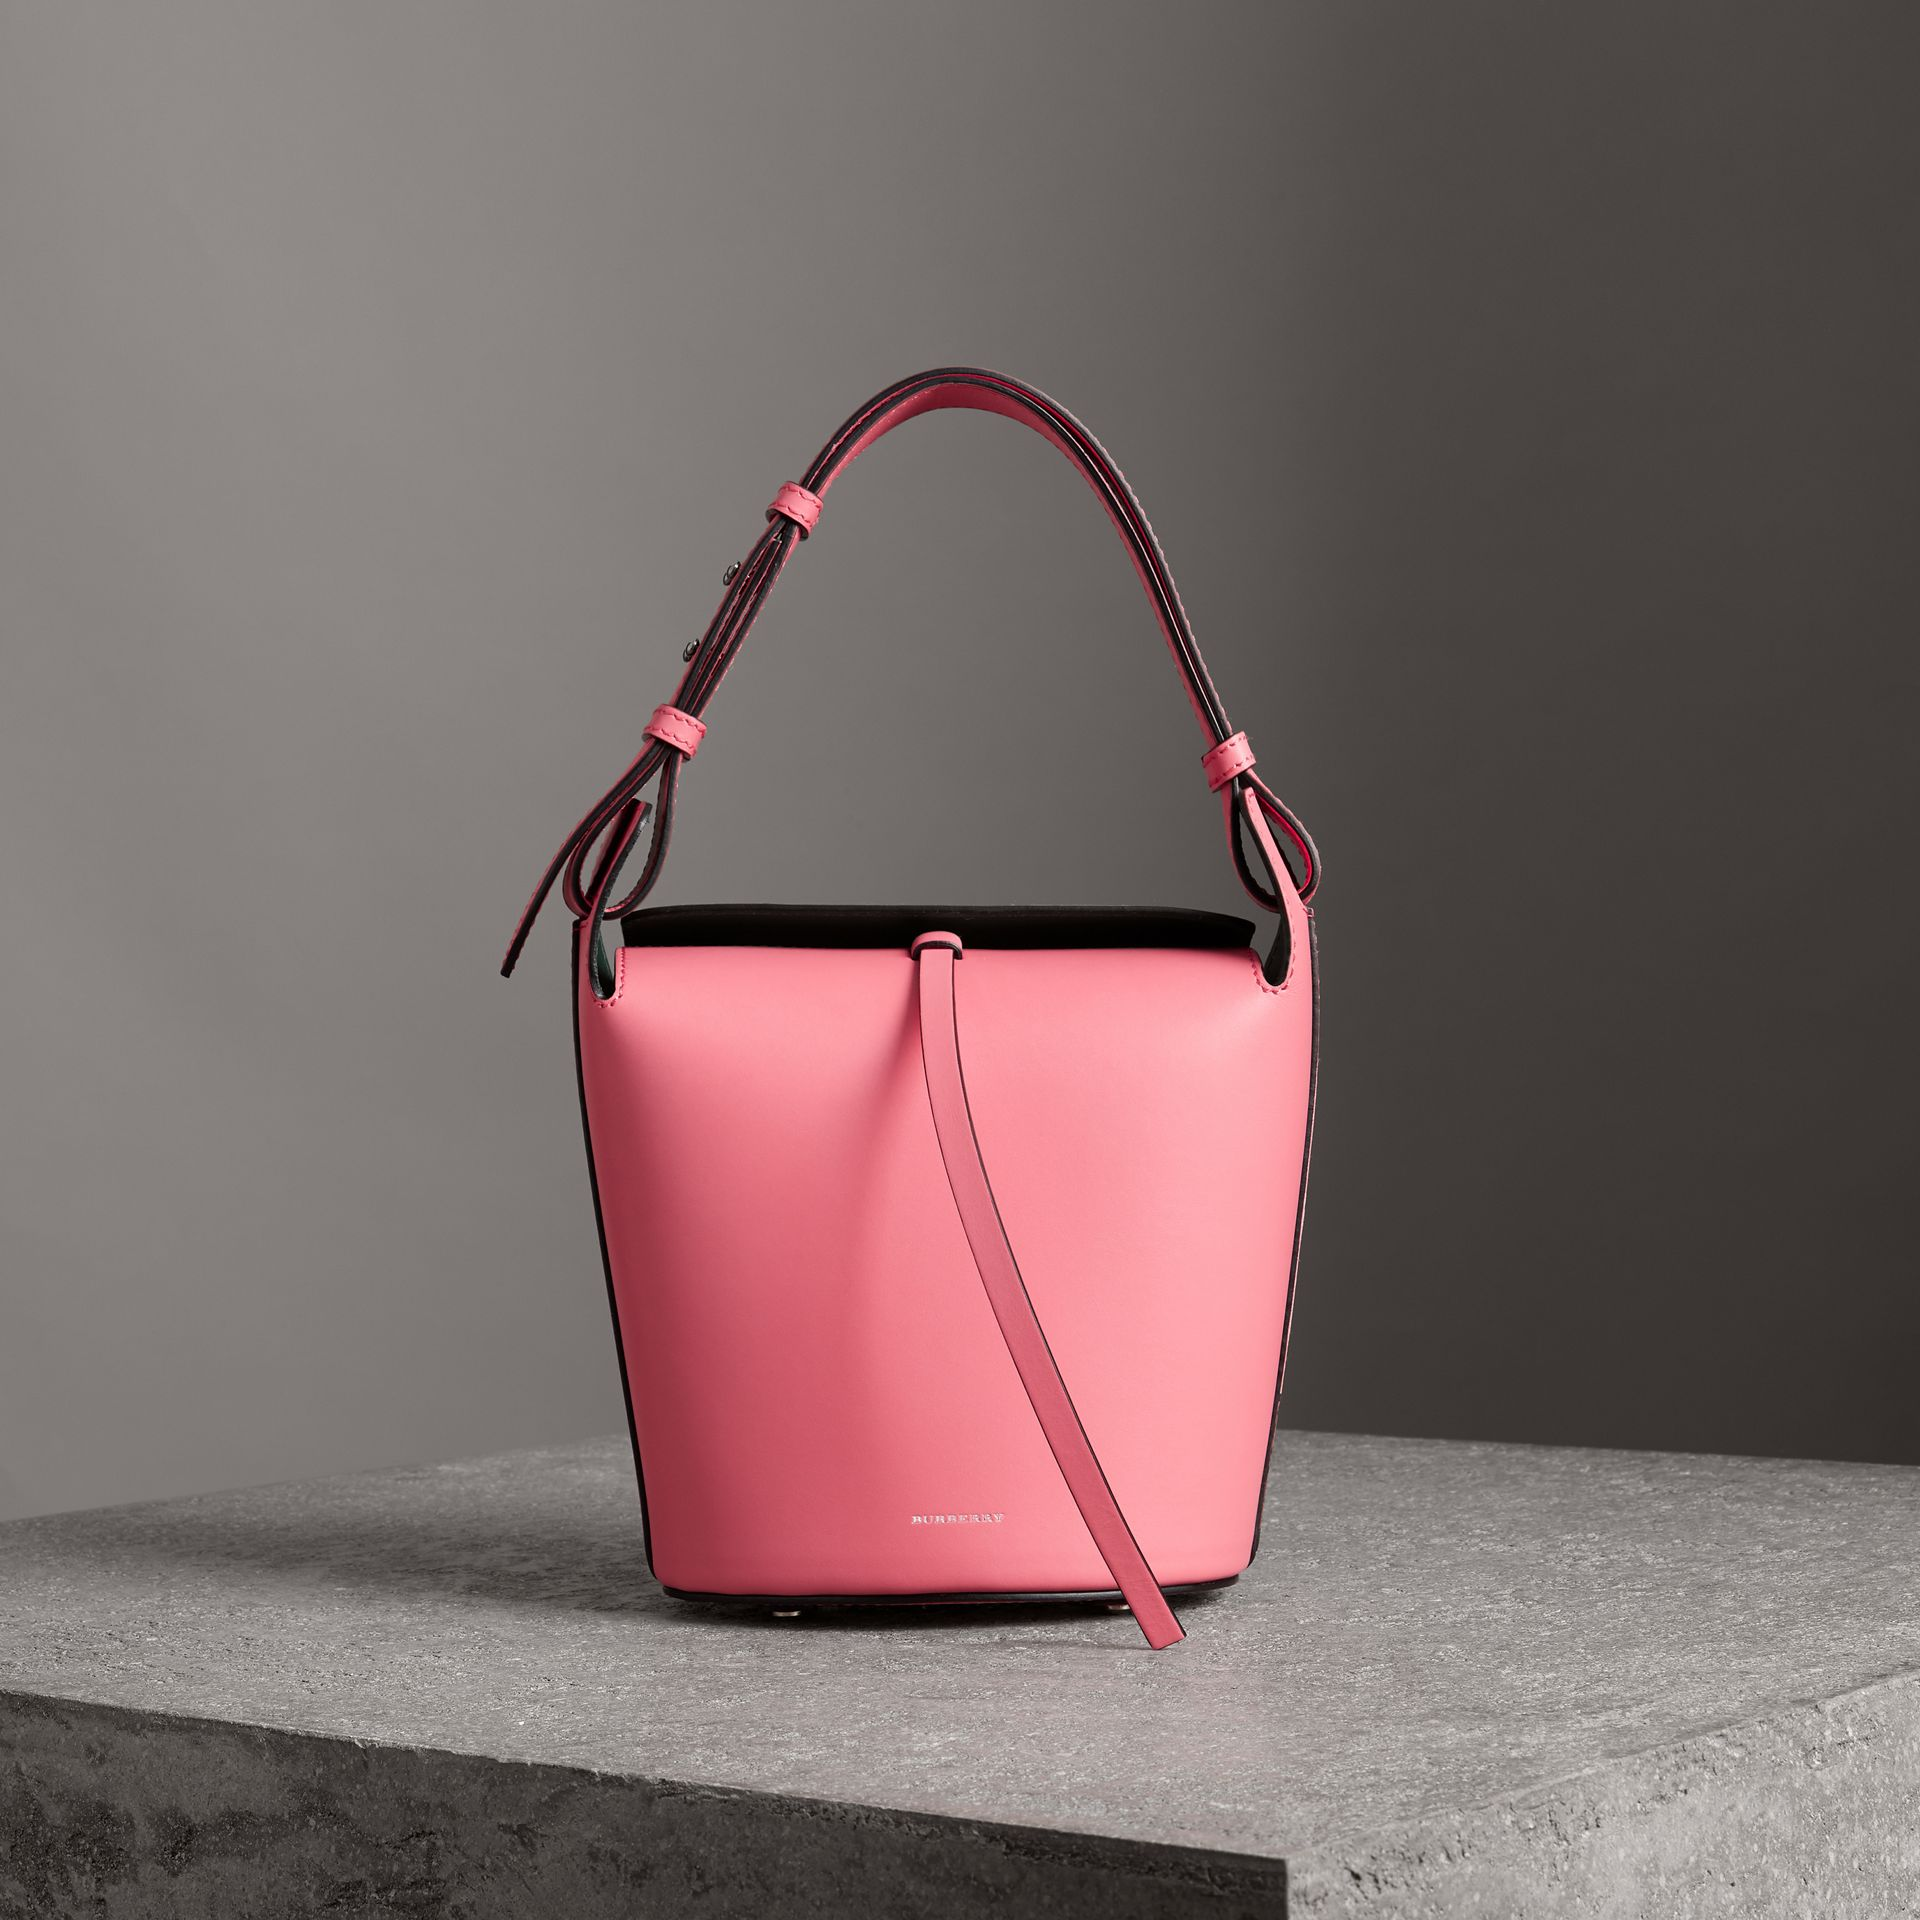 Borsa The Bucket piccola in pelle (Rosa Corallo Brillante) - Donna | Burberry - immagine della galleria 0